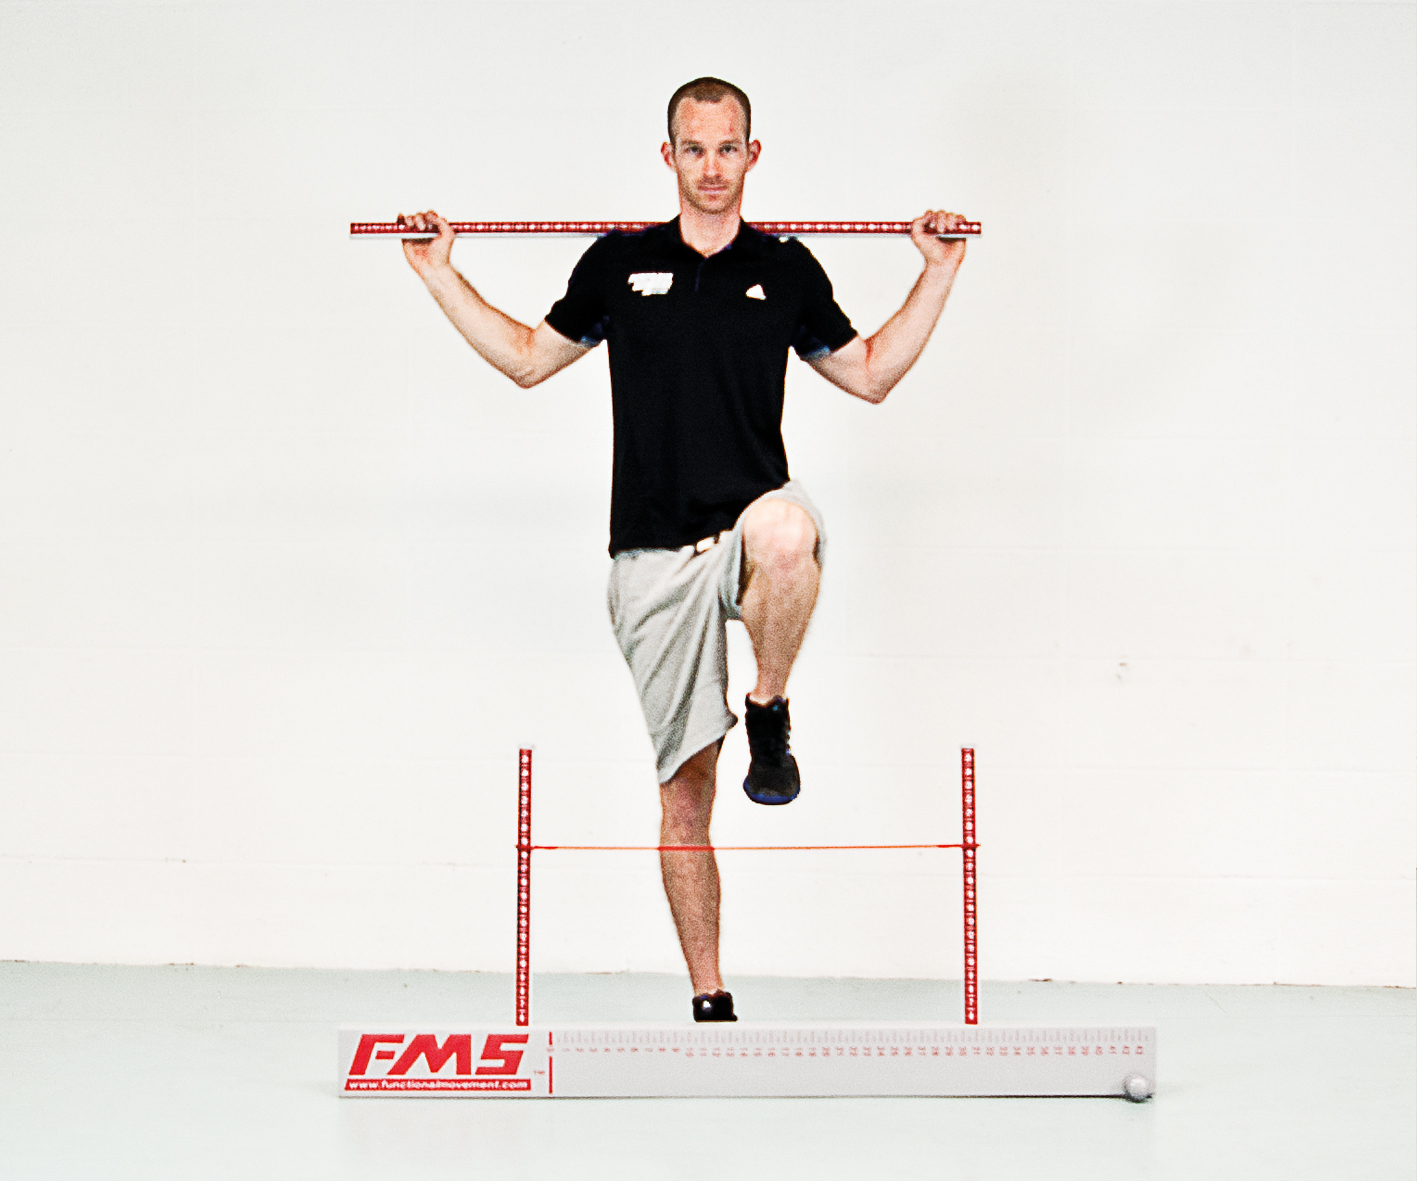 Functional Movement Screen Übung: Hurdle Step